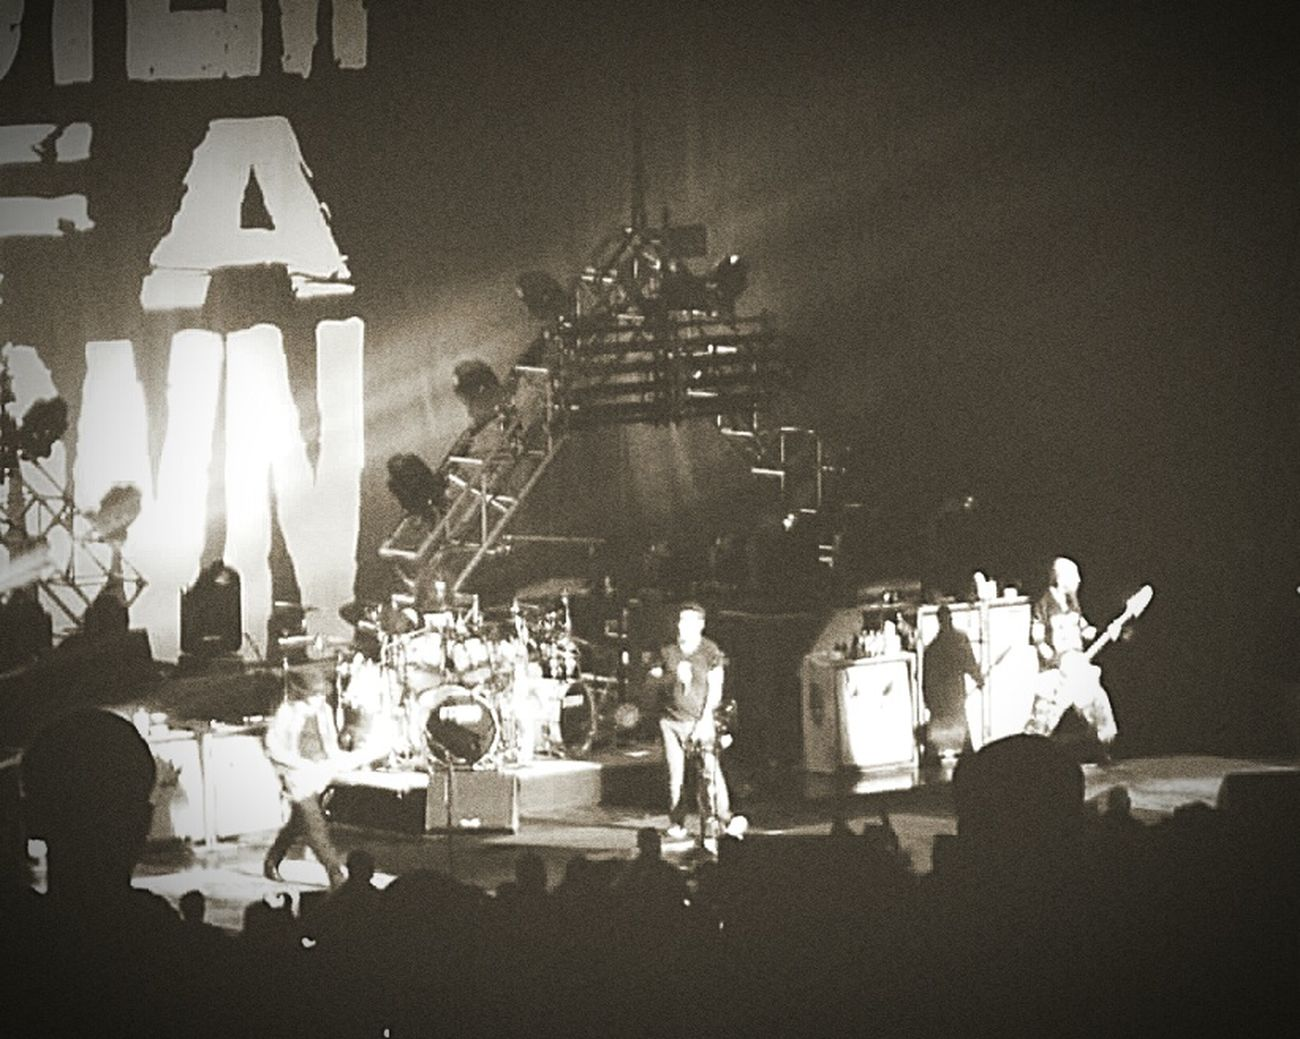 S.O.A.D. Detroit MGMGrand Detroitrockcity Brighton Pavilion Systemofadown